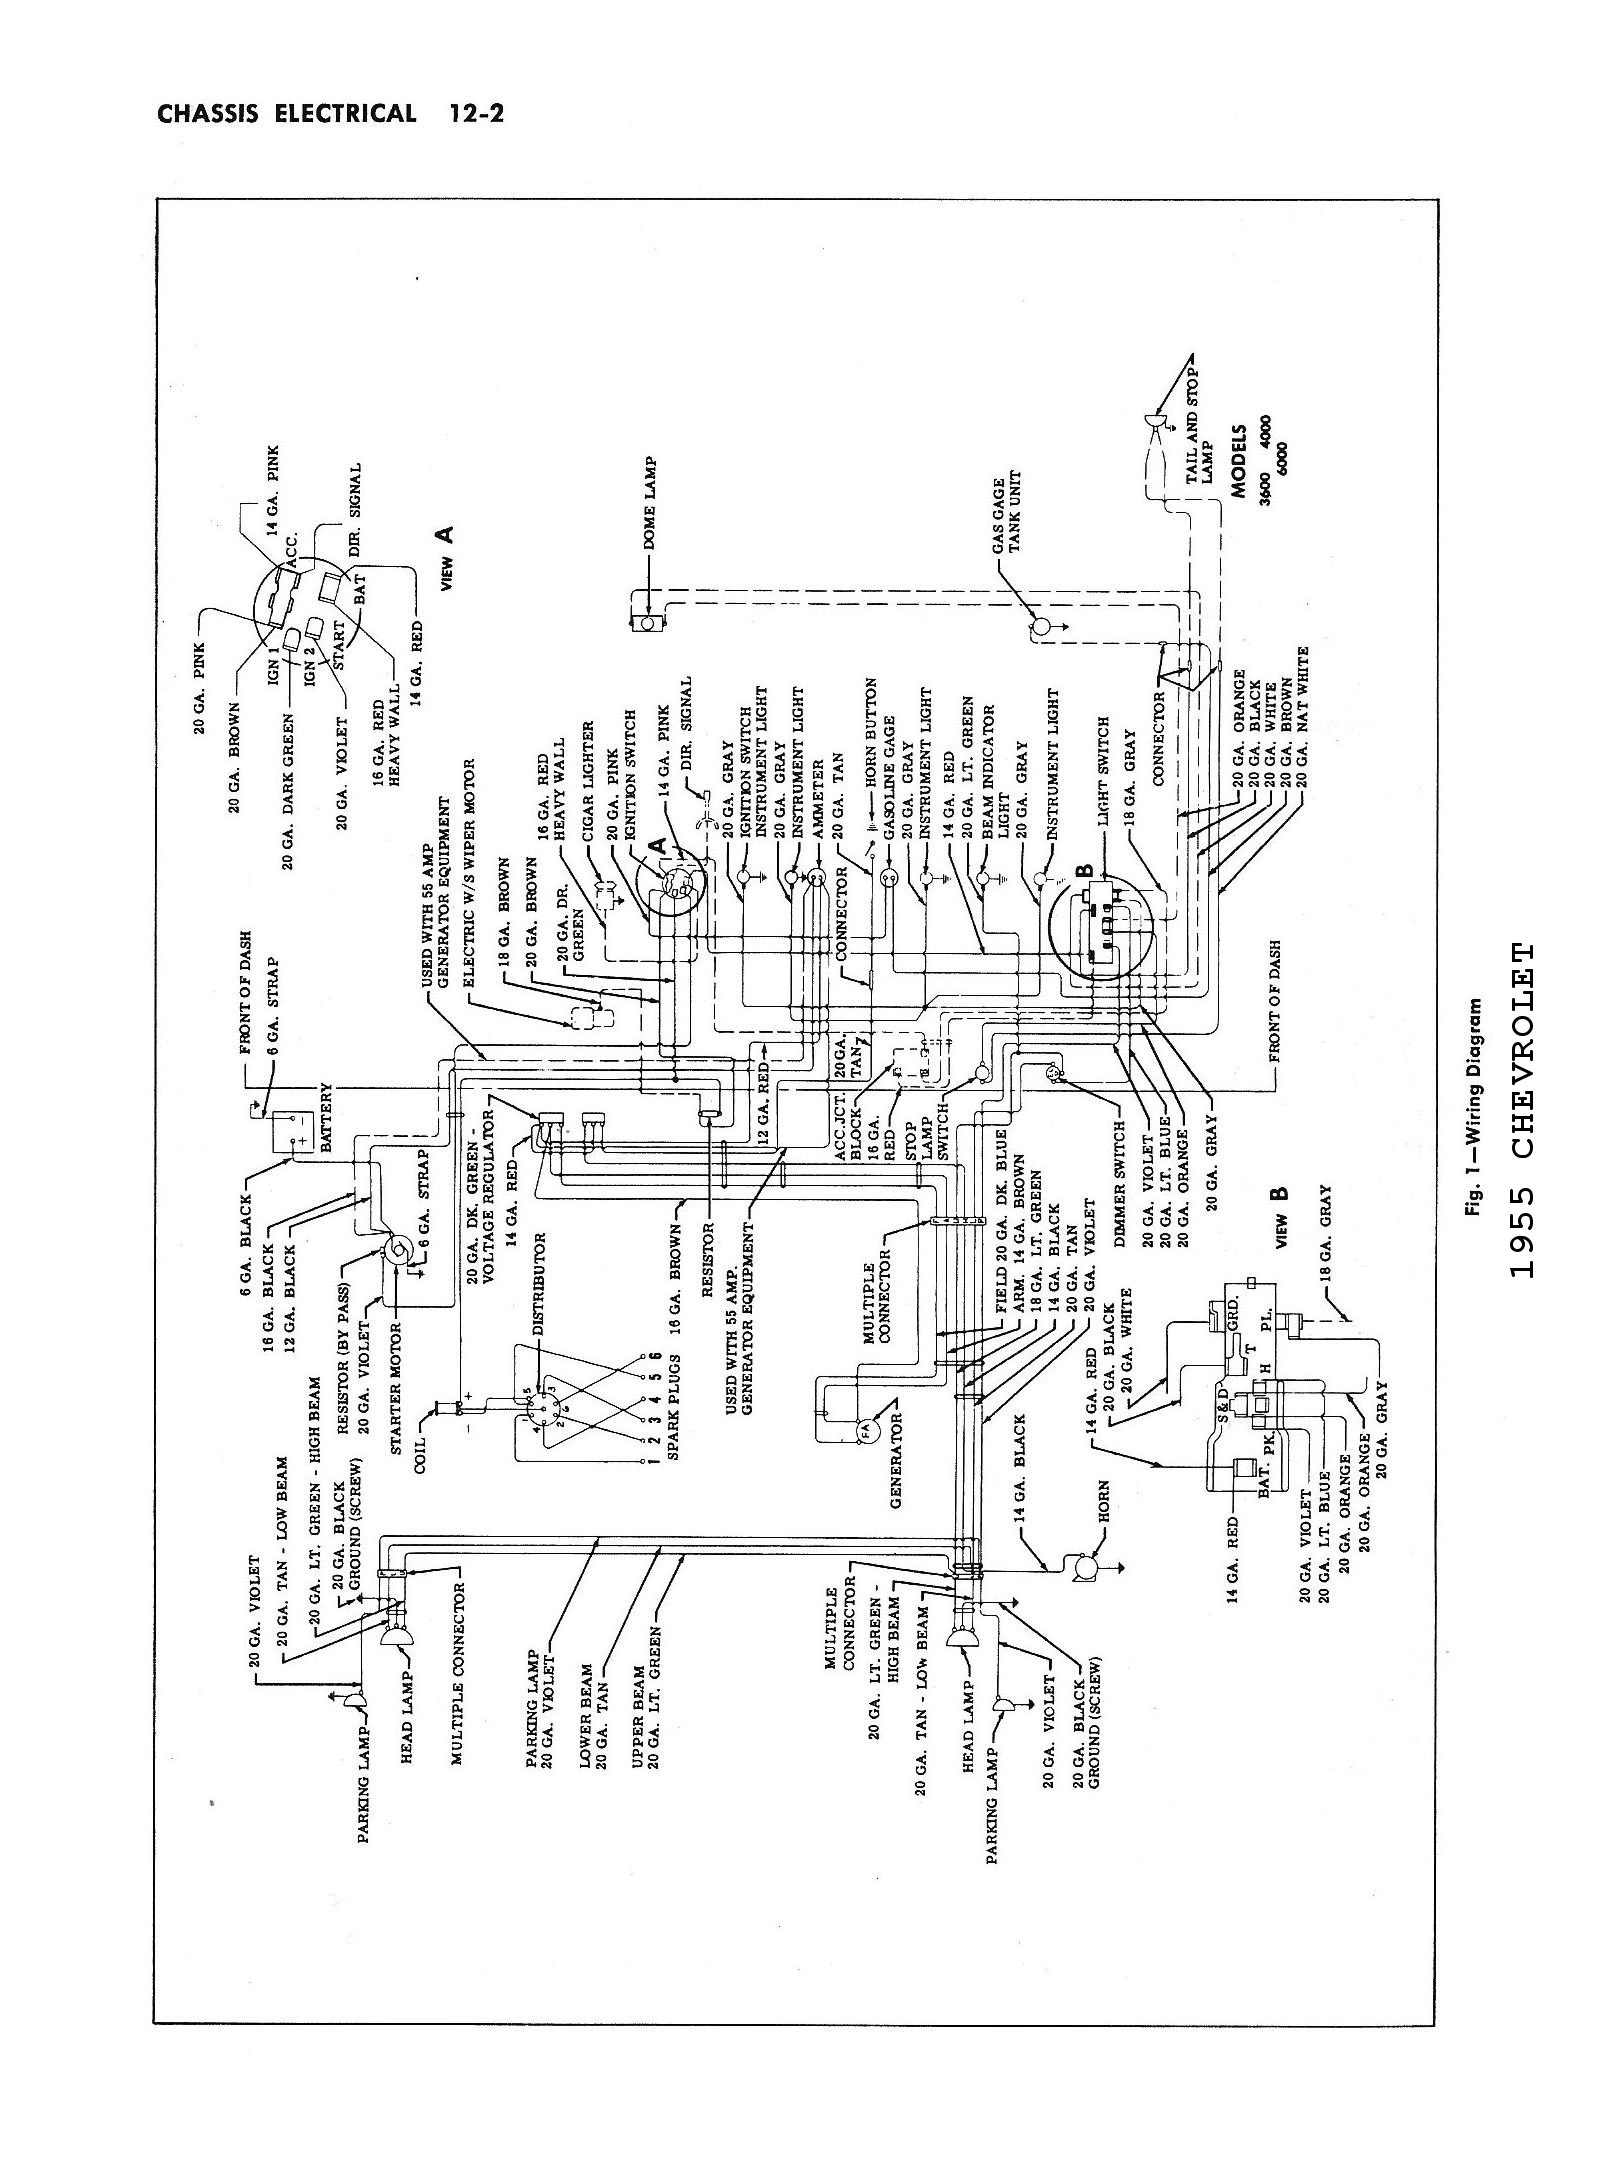 gm headlight switch wiring diagram 407 wiring diagram third level1961 chevy  apache ignition switch wiring diagram